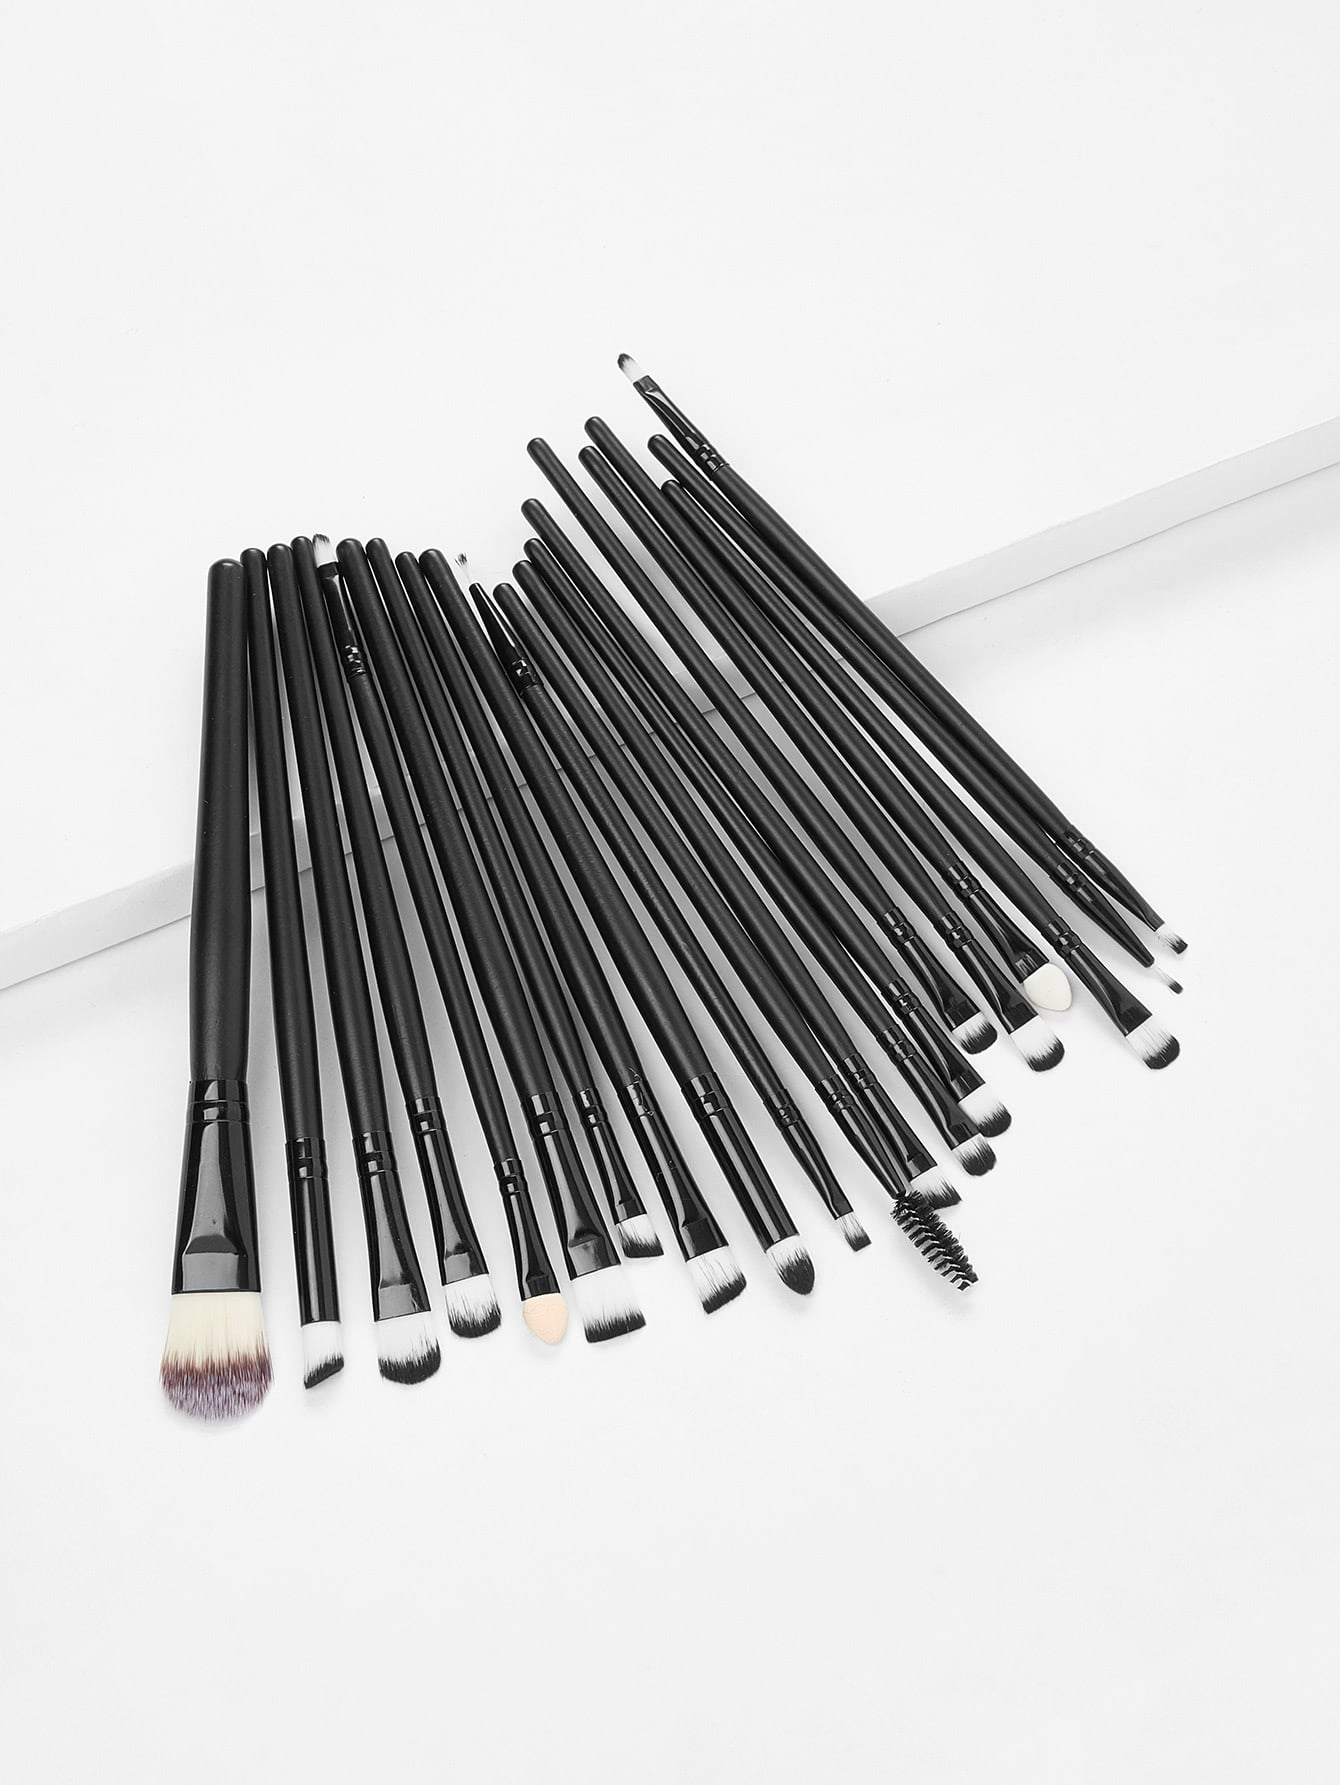 Professional Makeup 20pcs Brushes Set Powder Foundation Eyeshadow Eyeliner professional 24pcs pink cosmetic makeup brushes set foundation eye shadow eyeliner cream powder brush kits pouch bag case